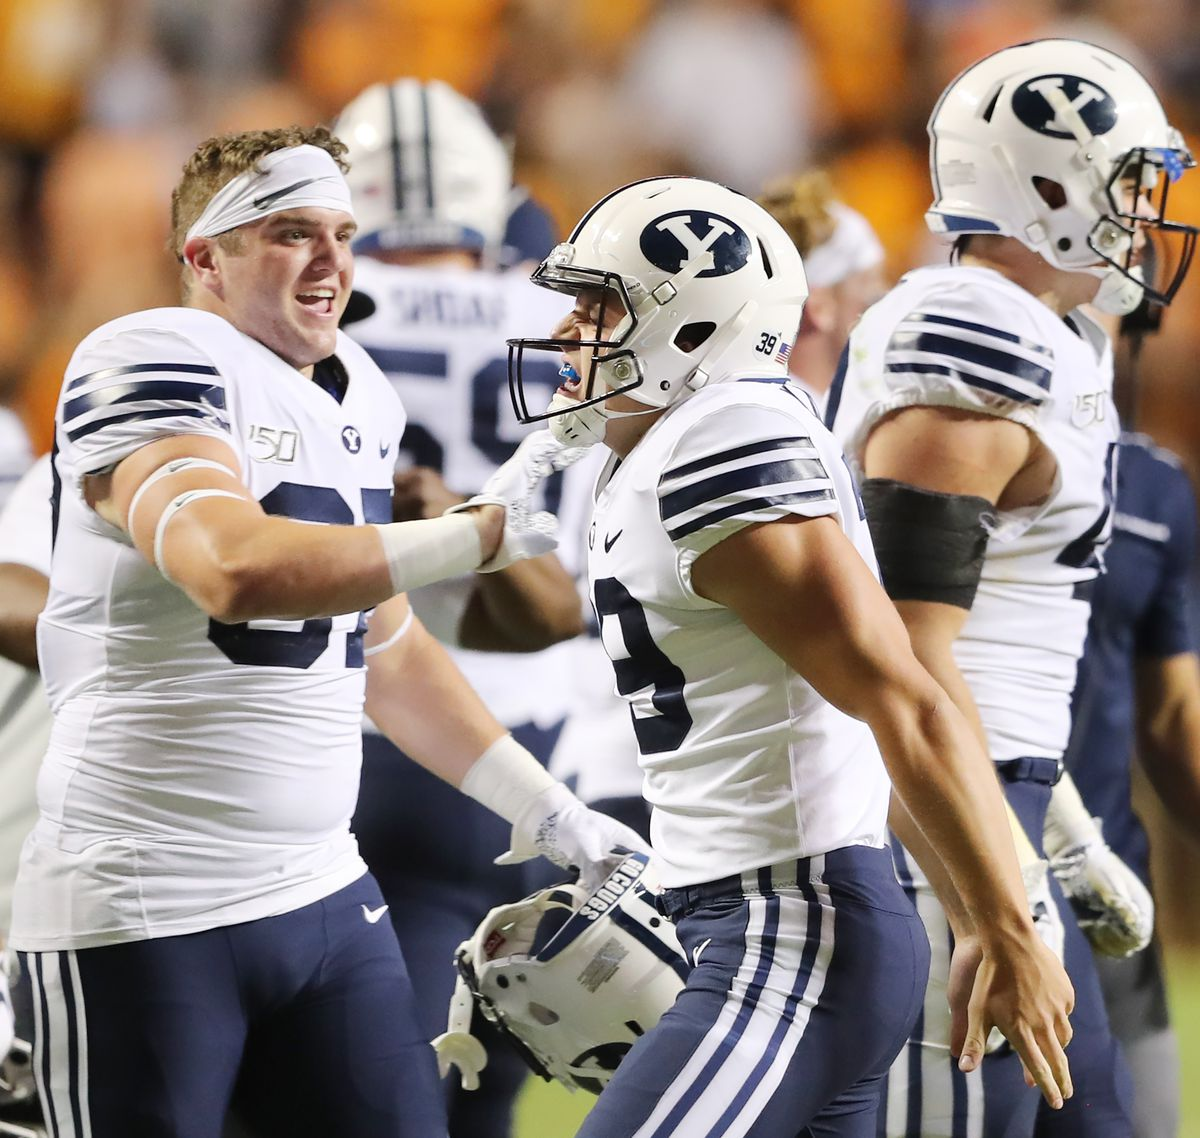 BYU kicker Jake Oldroyd (39) celebrates hitting the game-tying field goal at the end of regulation time, forcing overtime as BYU and Tennessee play a game in Knoxville, Tennessee, on Saturday, Sept. 7, 2019. BYU went on to win 29-26 in double overtime.